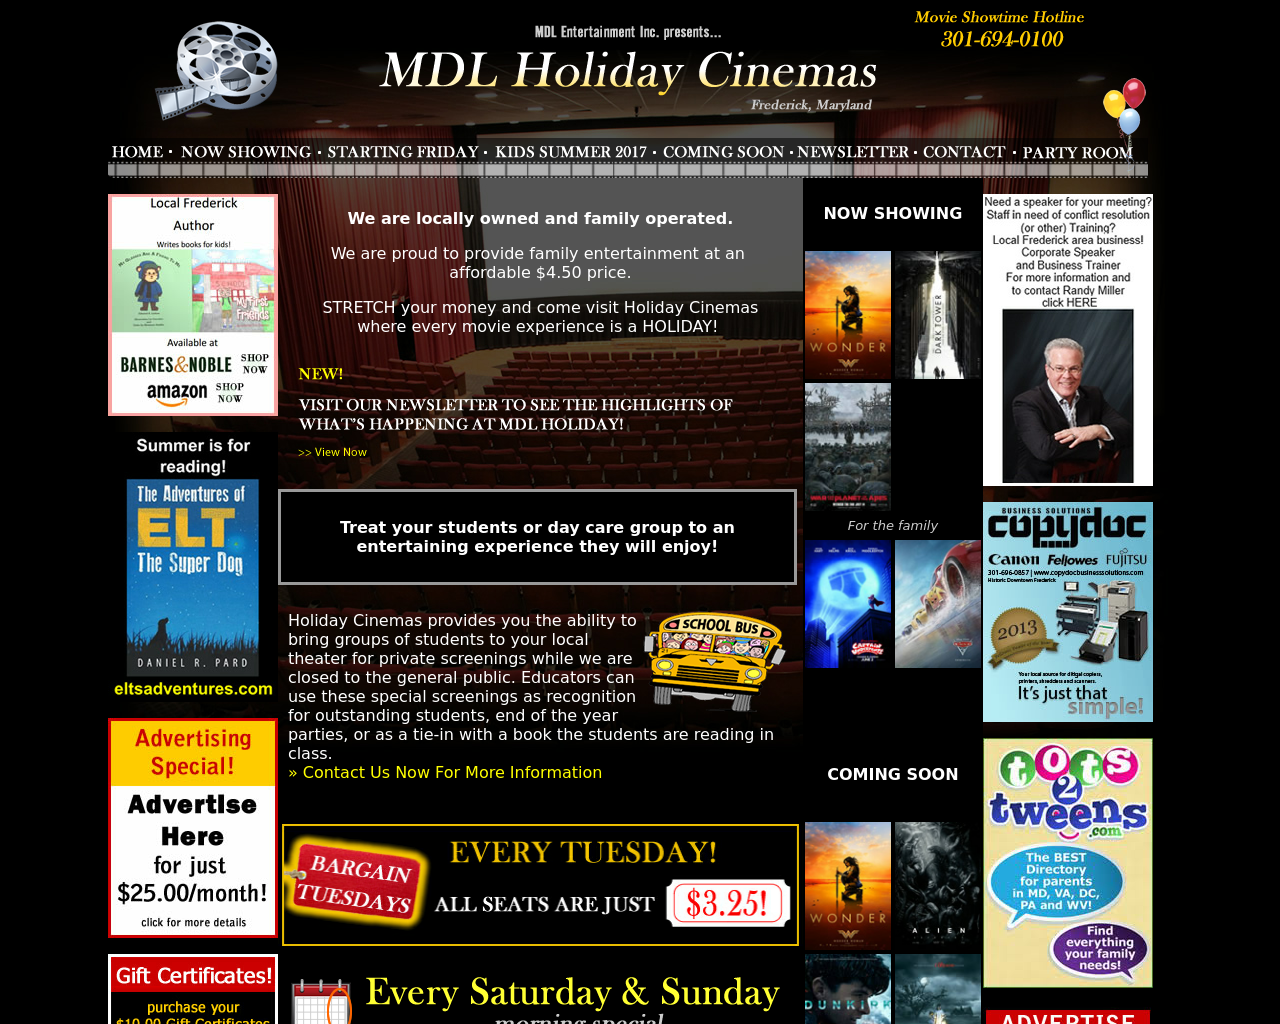 MDL-Holiday-Cinemas-Advertising-Reviews-Pricing